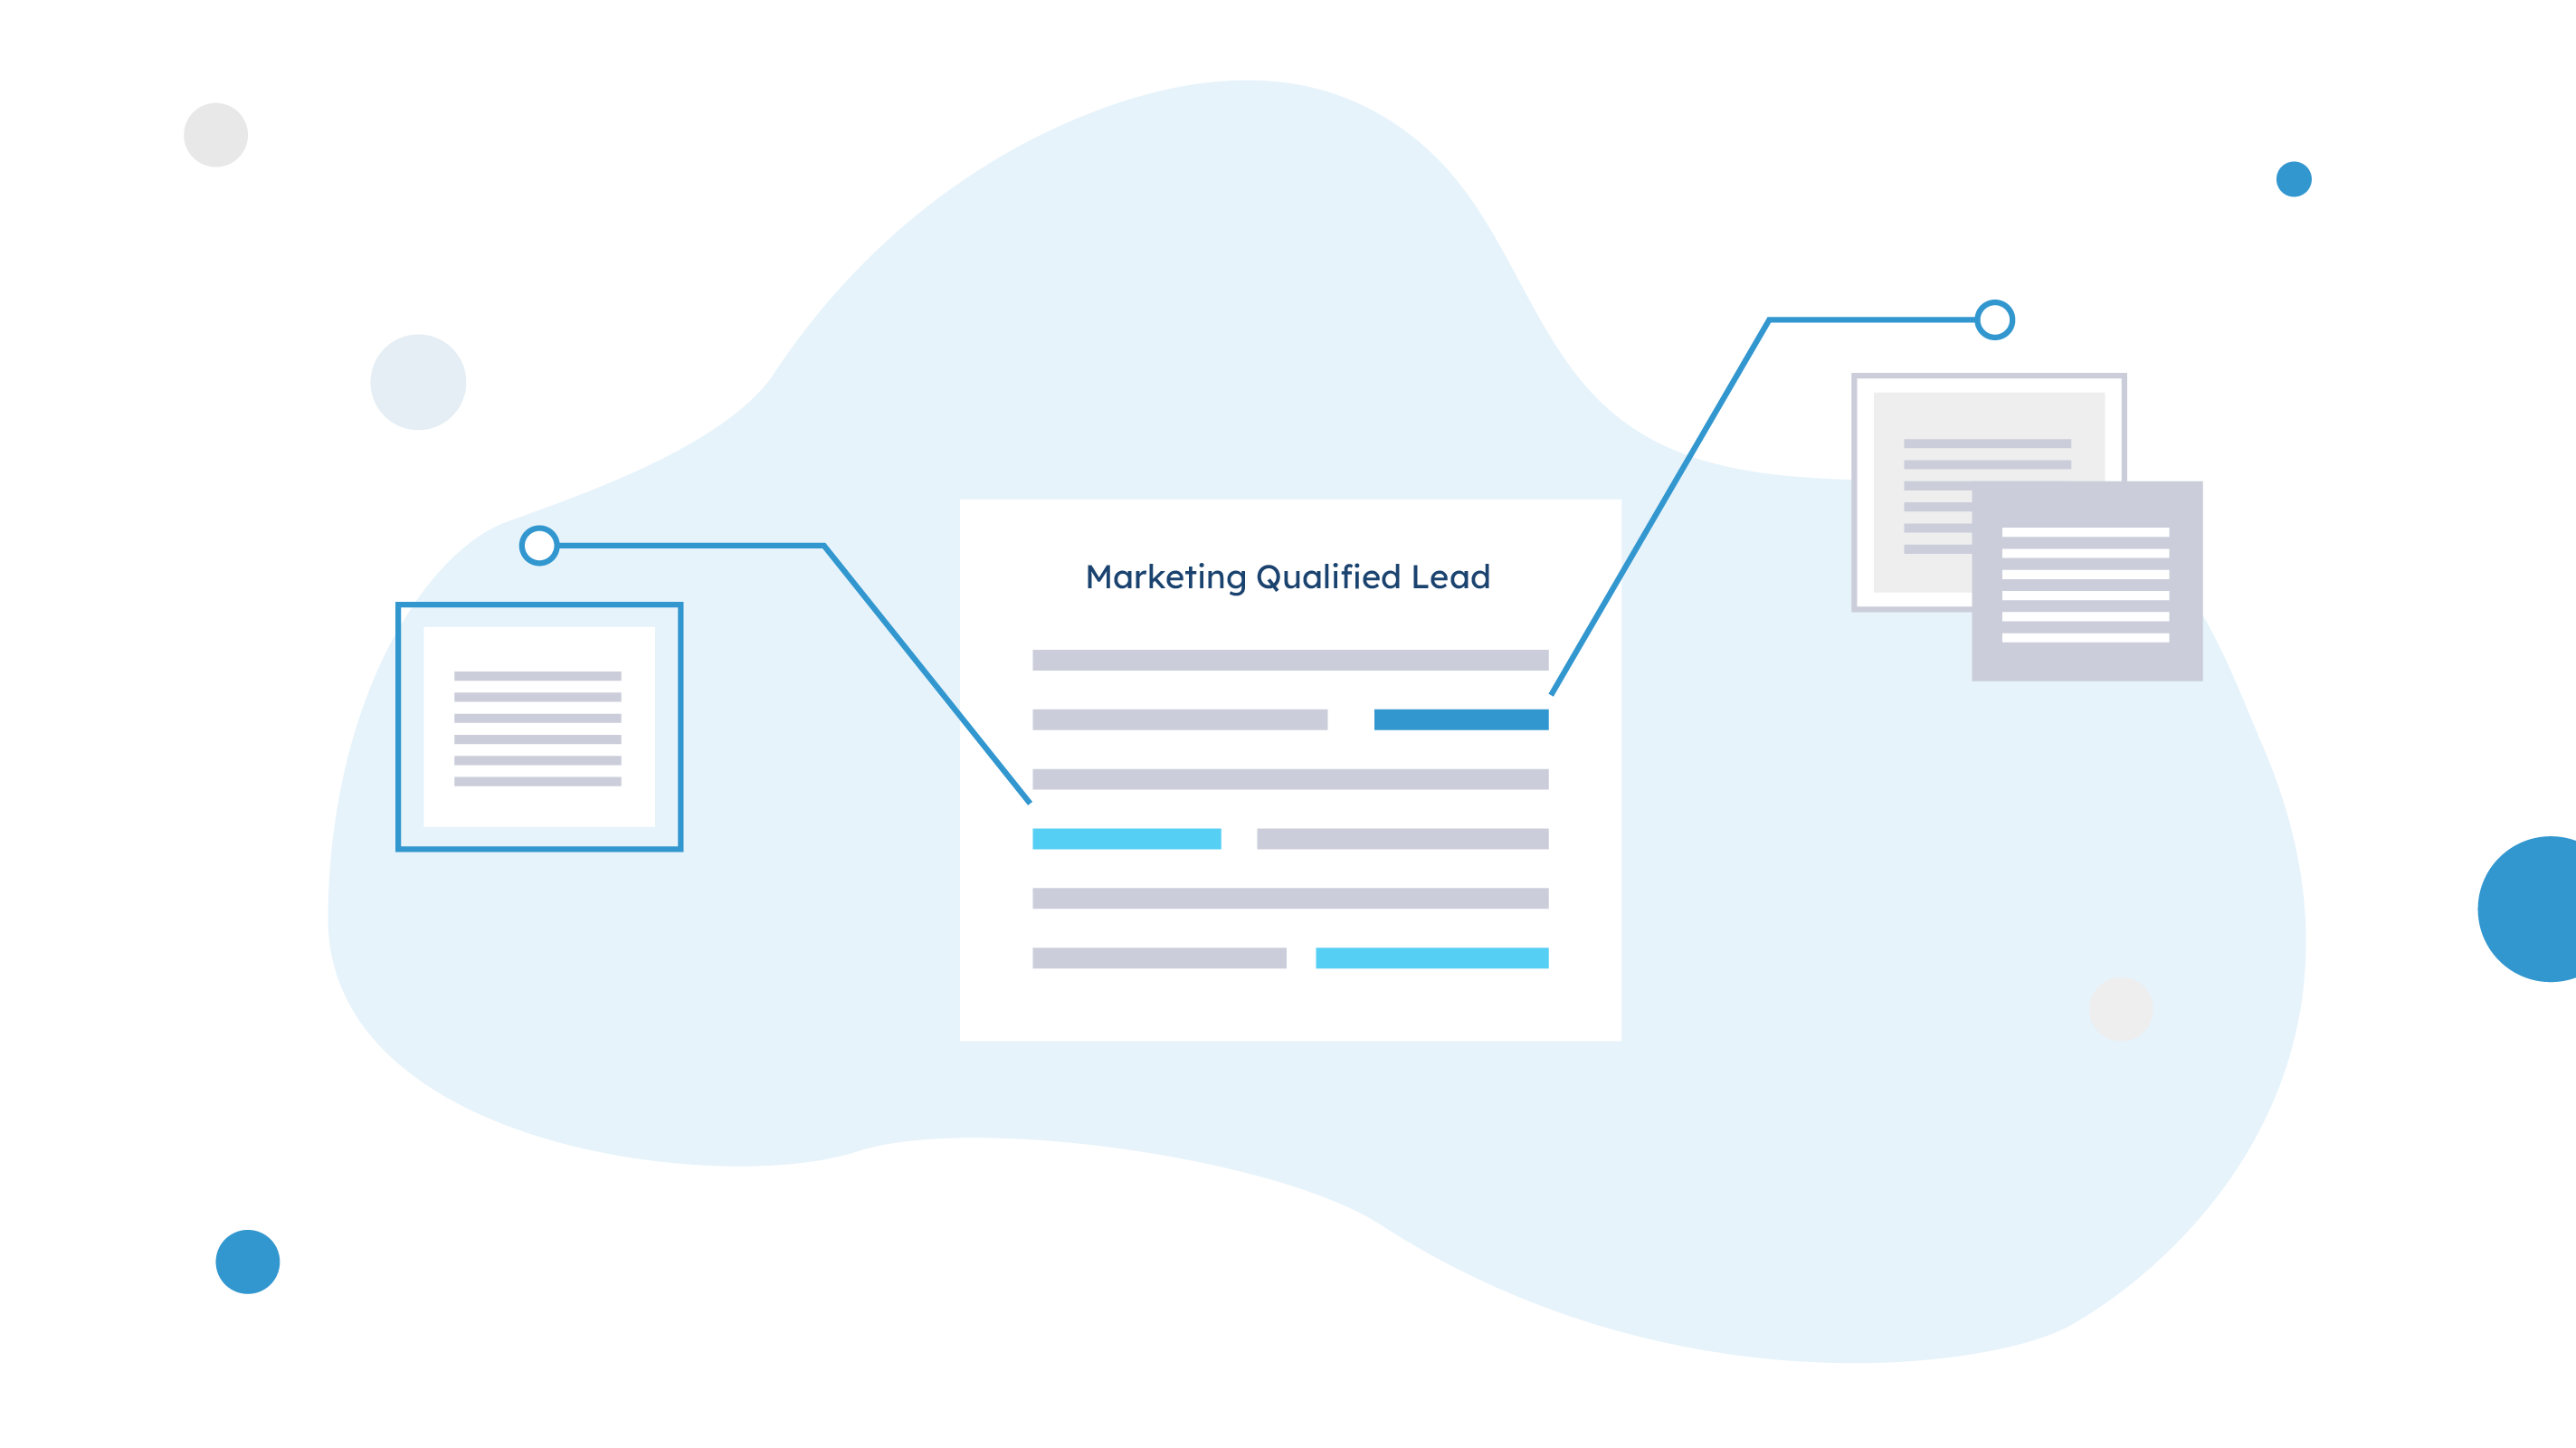 How to define Marketing Qualified Leads for B2B SaaS companies